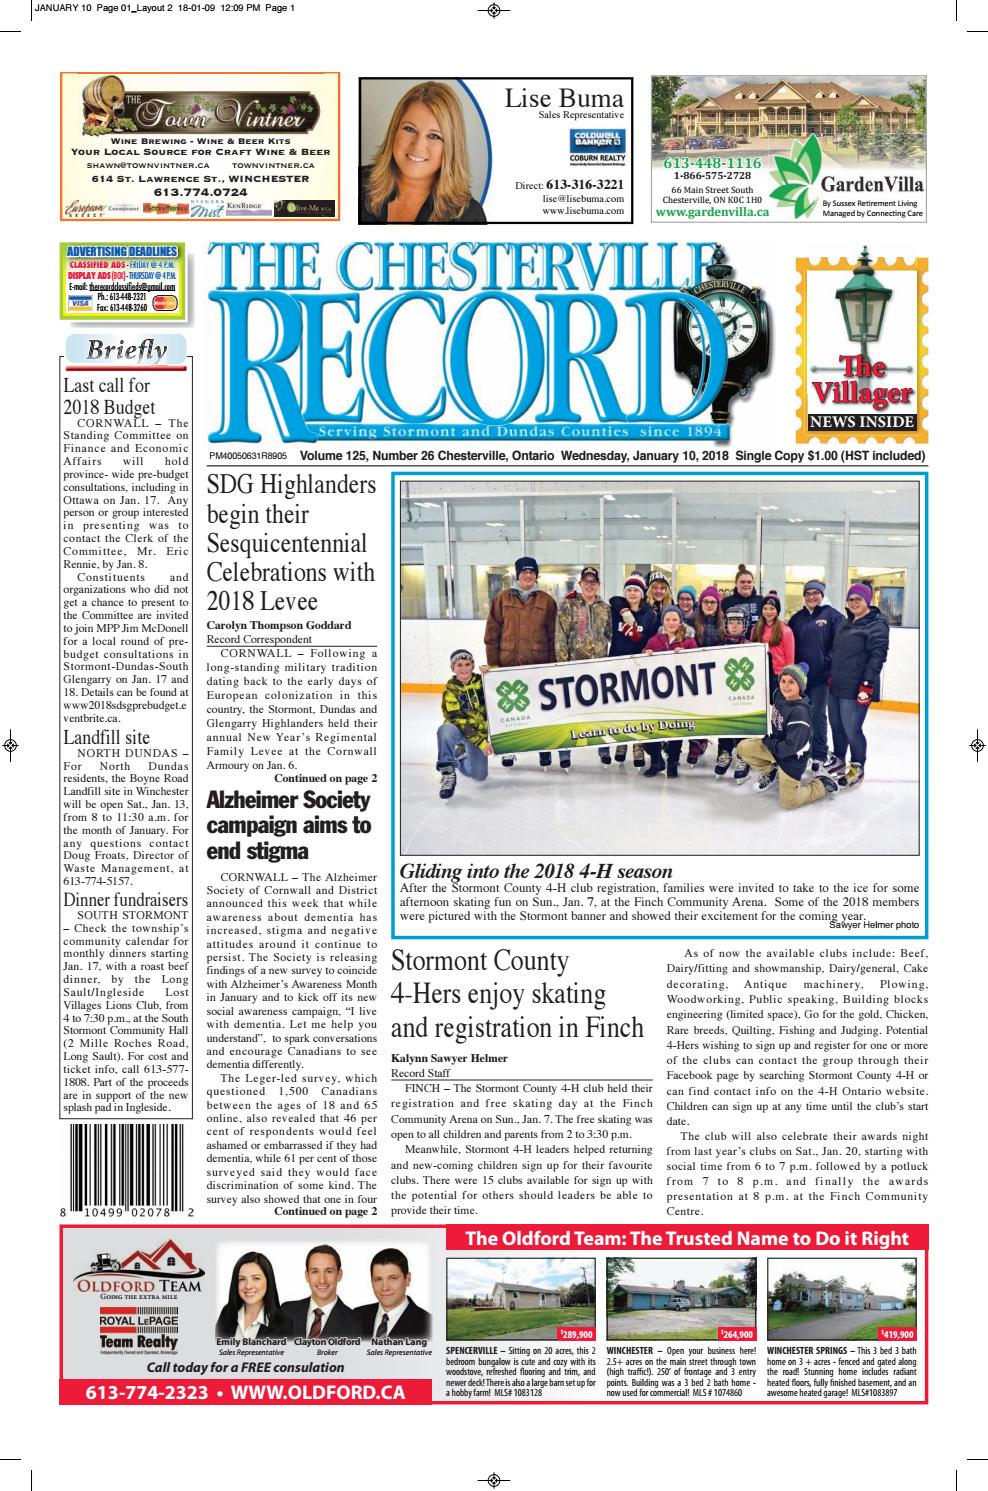 1cb273c7c4937 The Chesterville Record-January 10, 2018 by Robin Morris - issuu